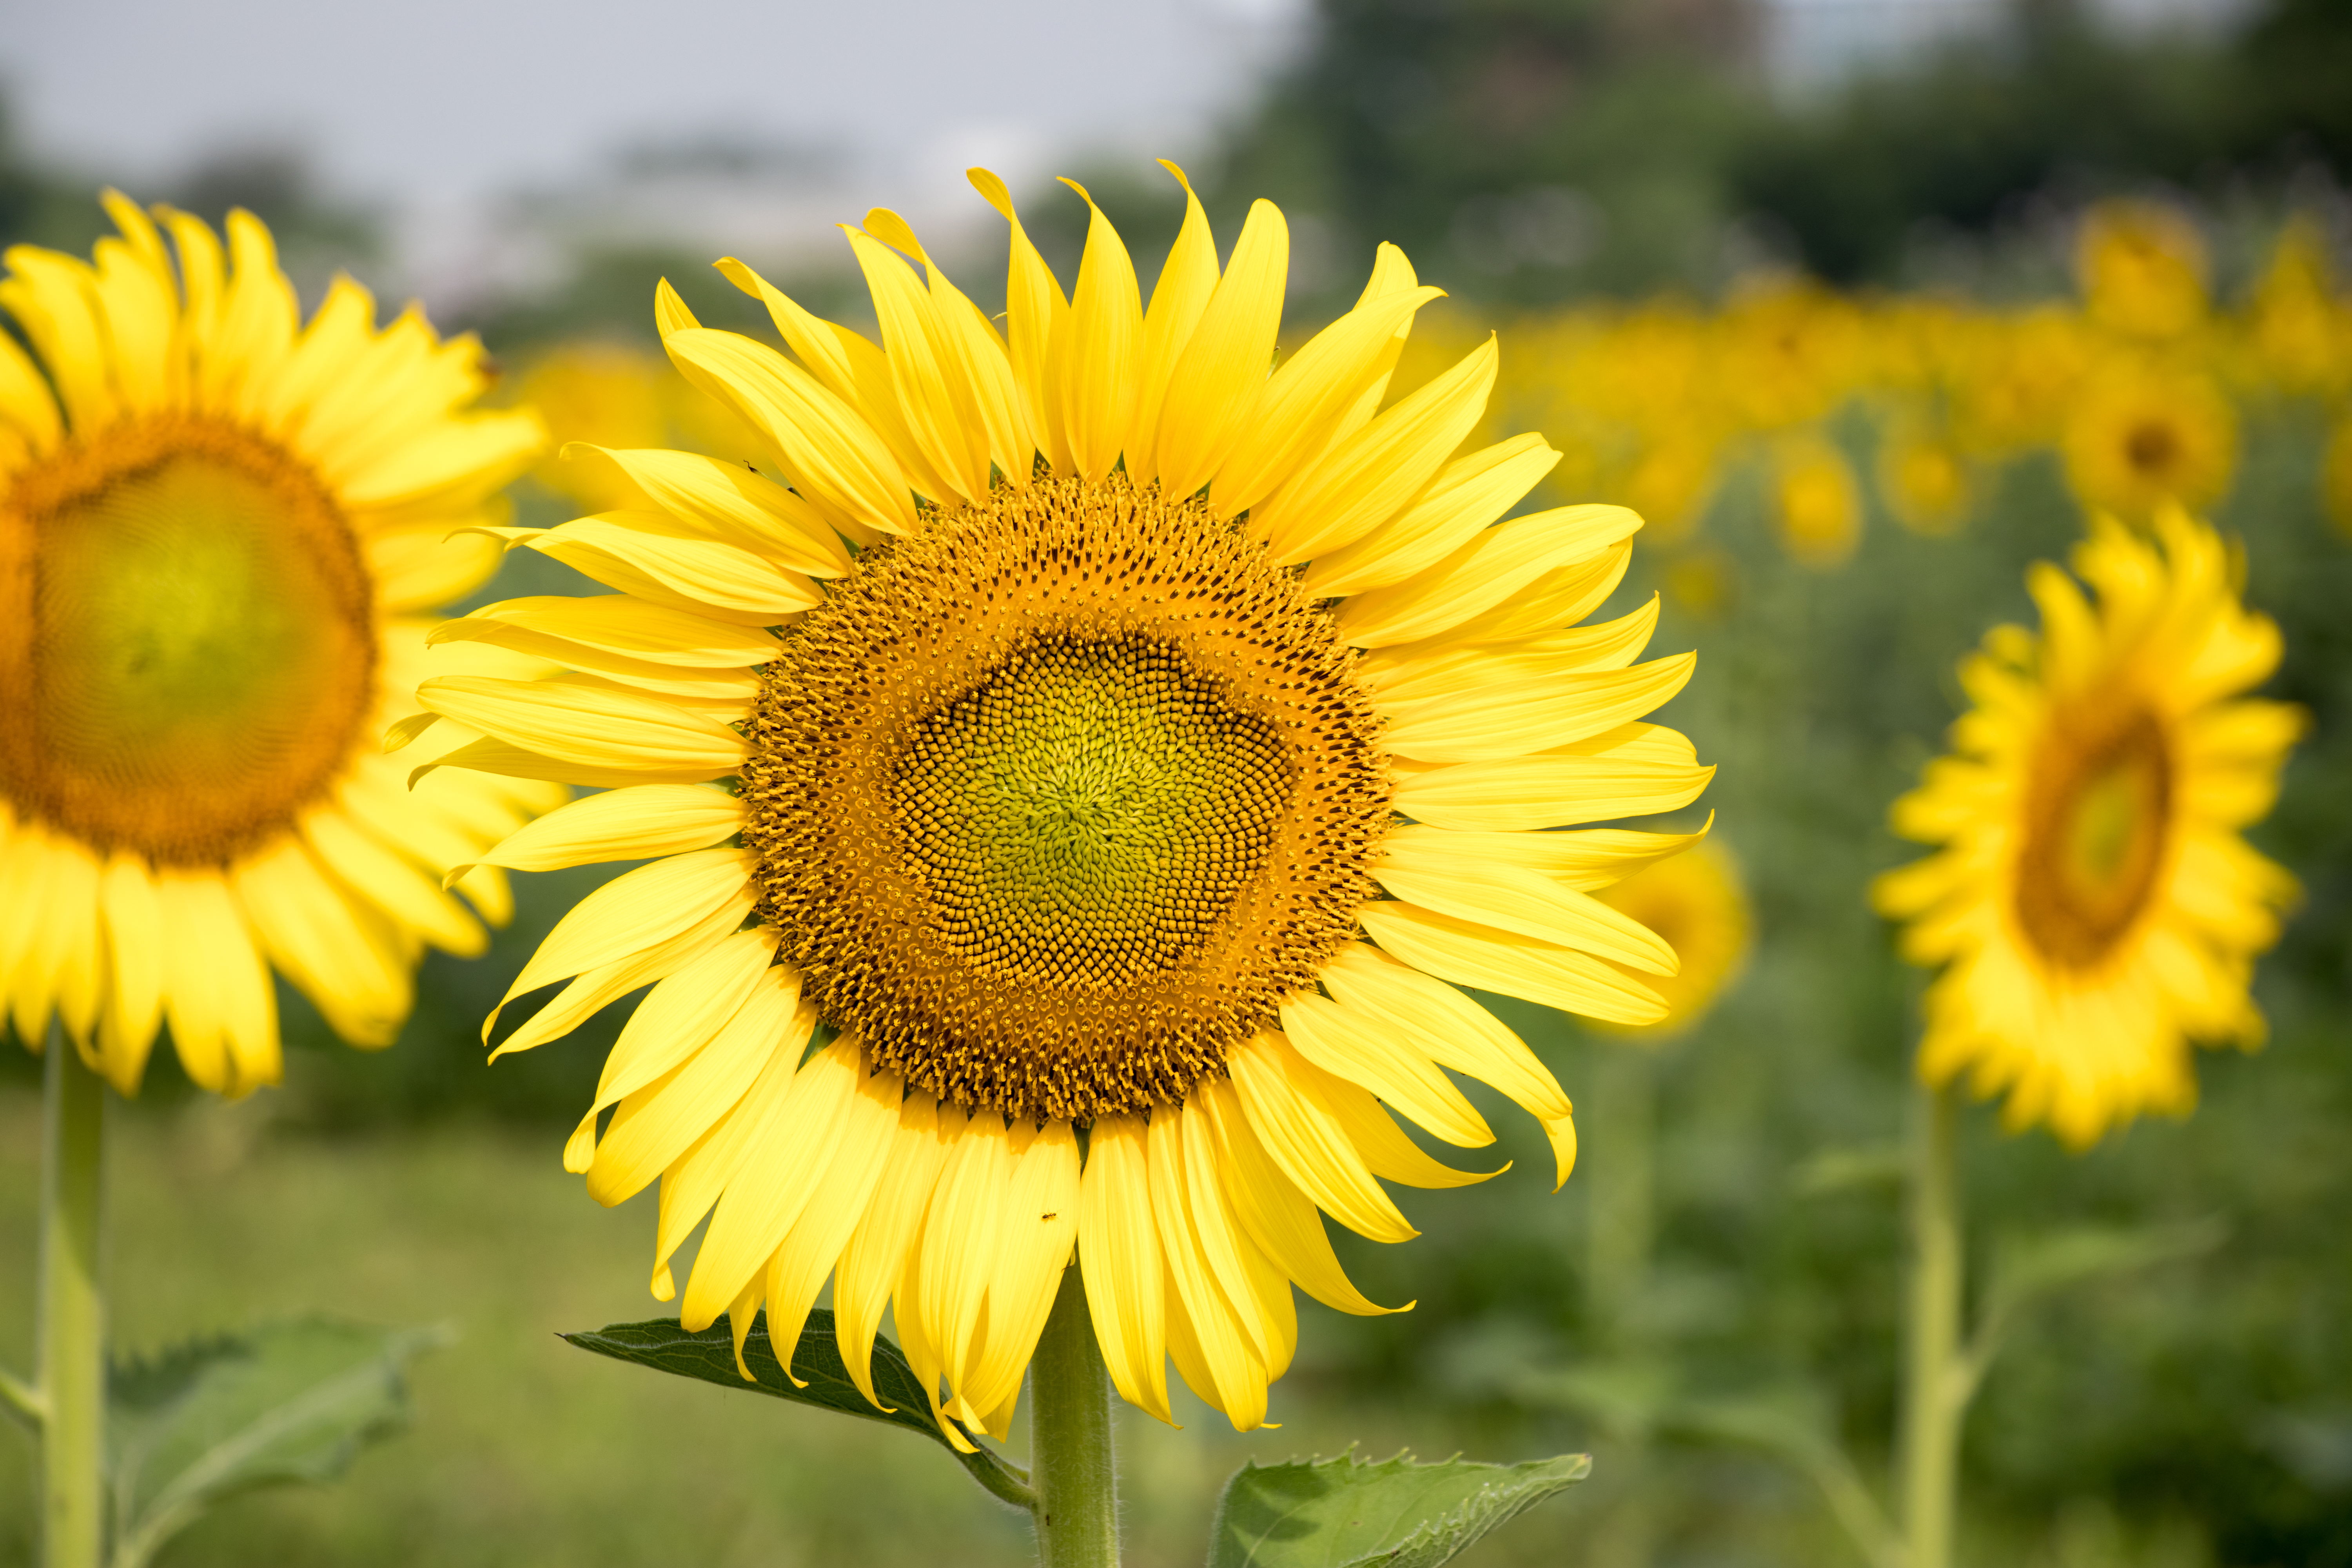 09753f2e7 What Should You Do With Sunflowers After They Bloom? | Home Guides ...